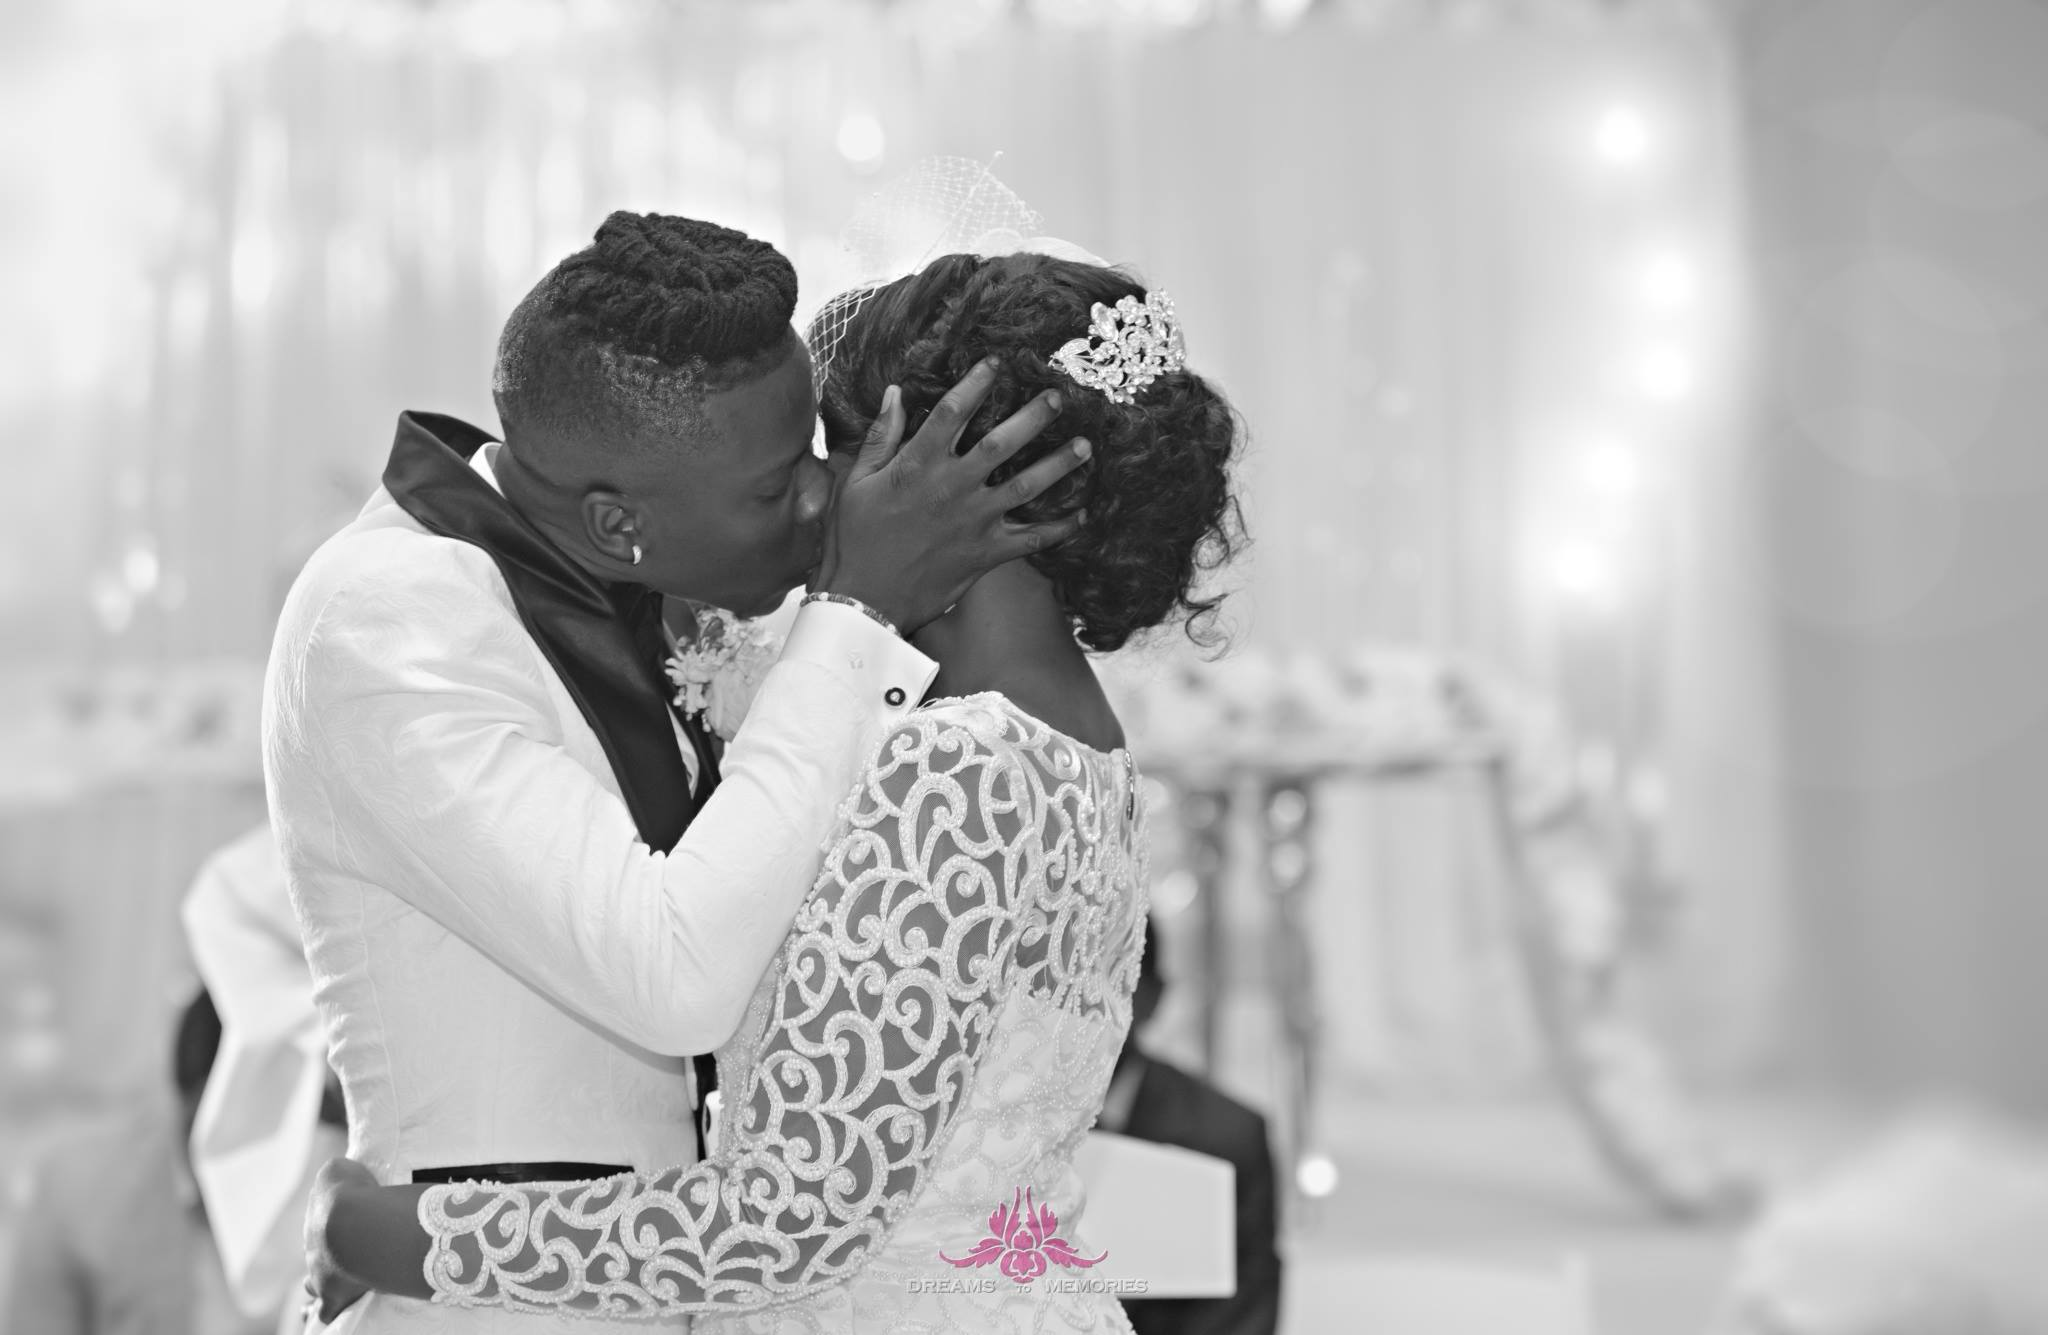 Photos: All you missed at Stonebowy's wedding